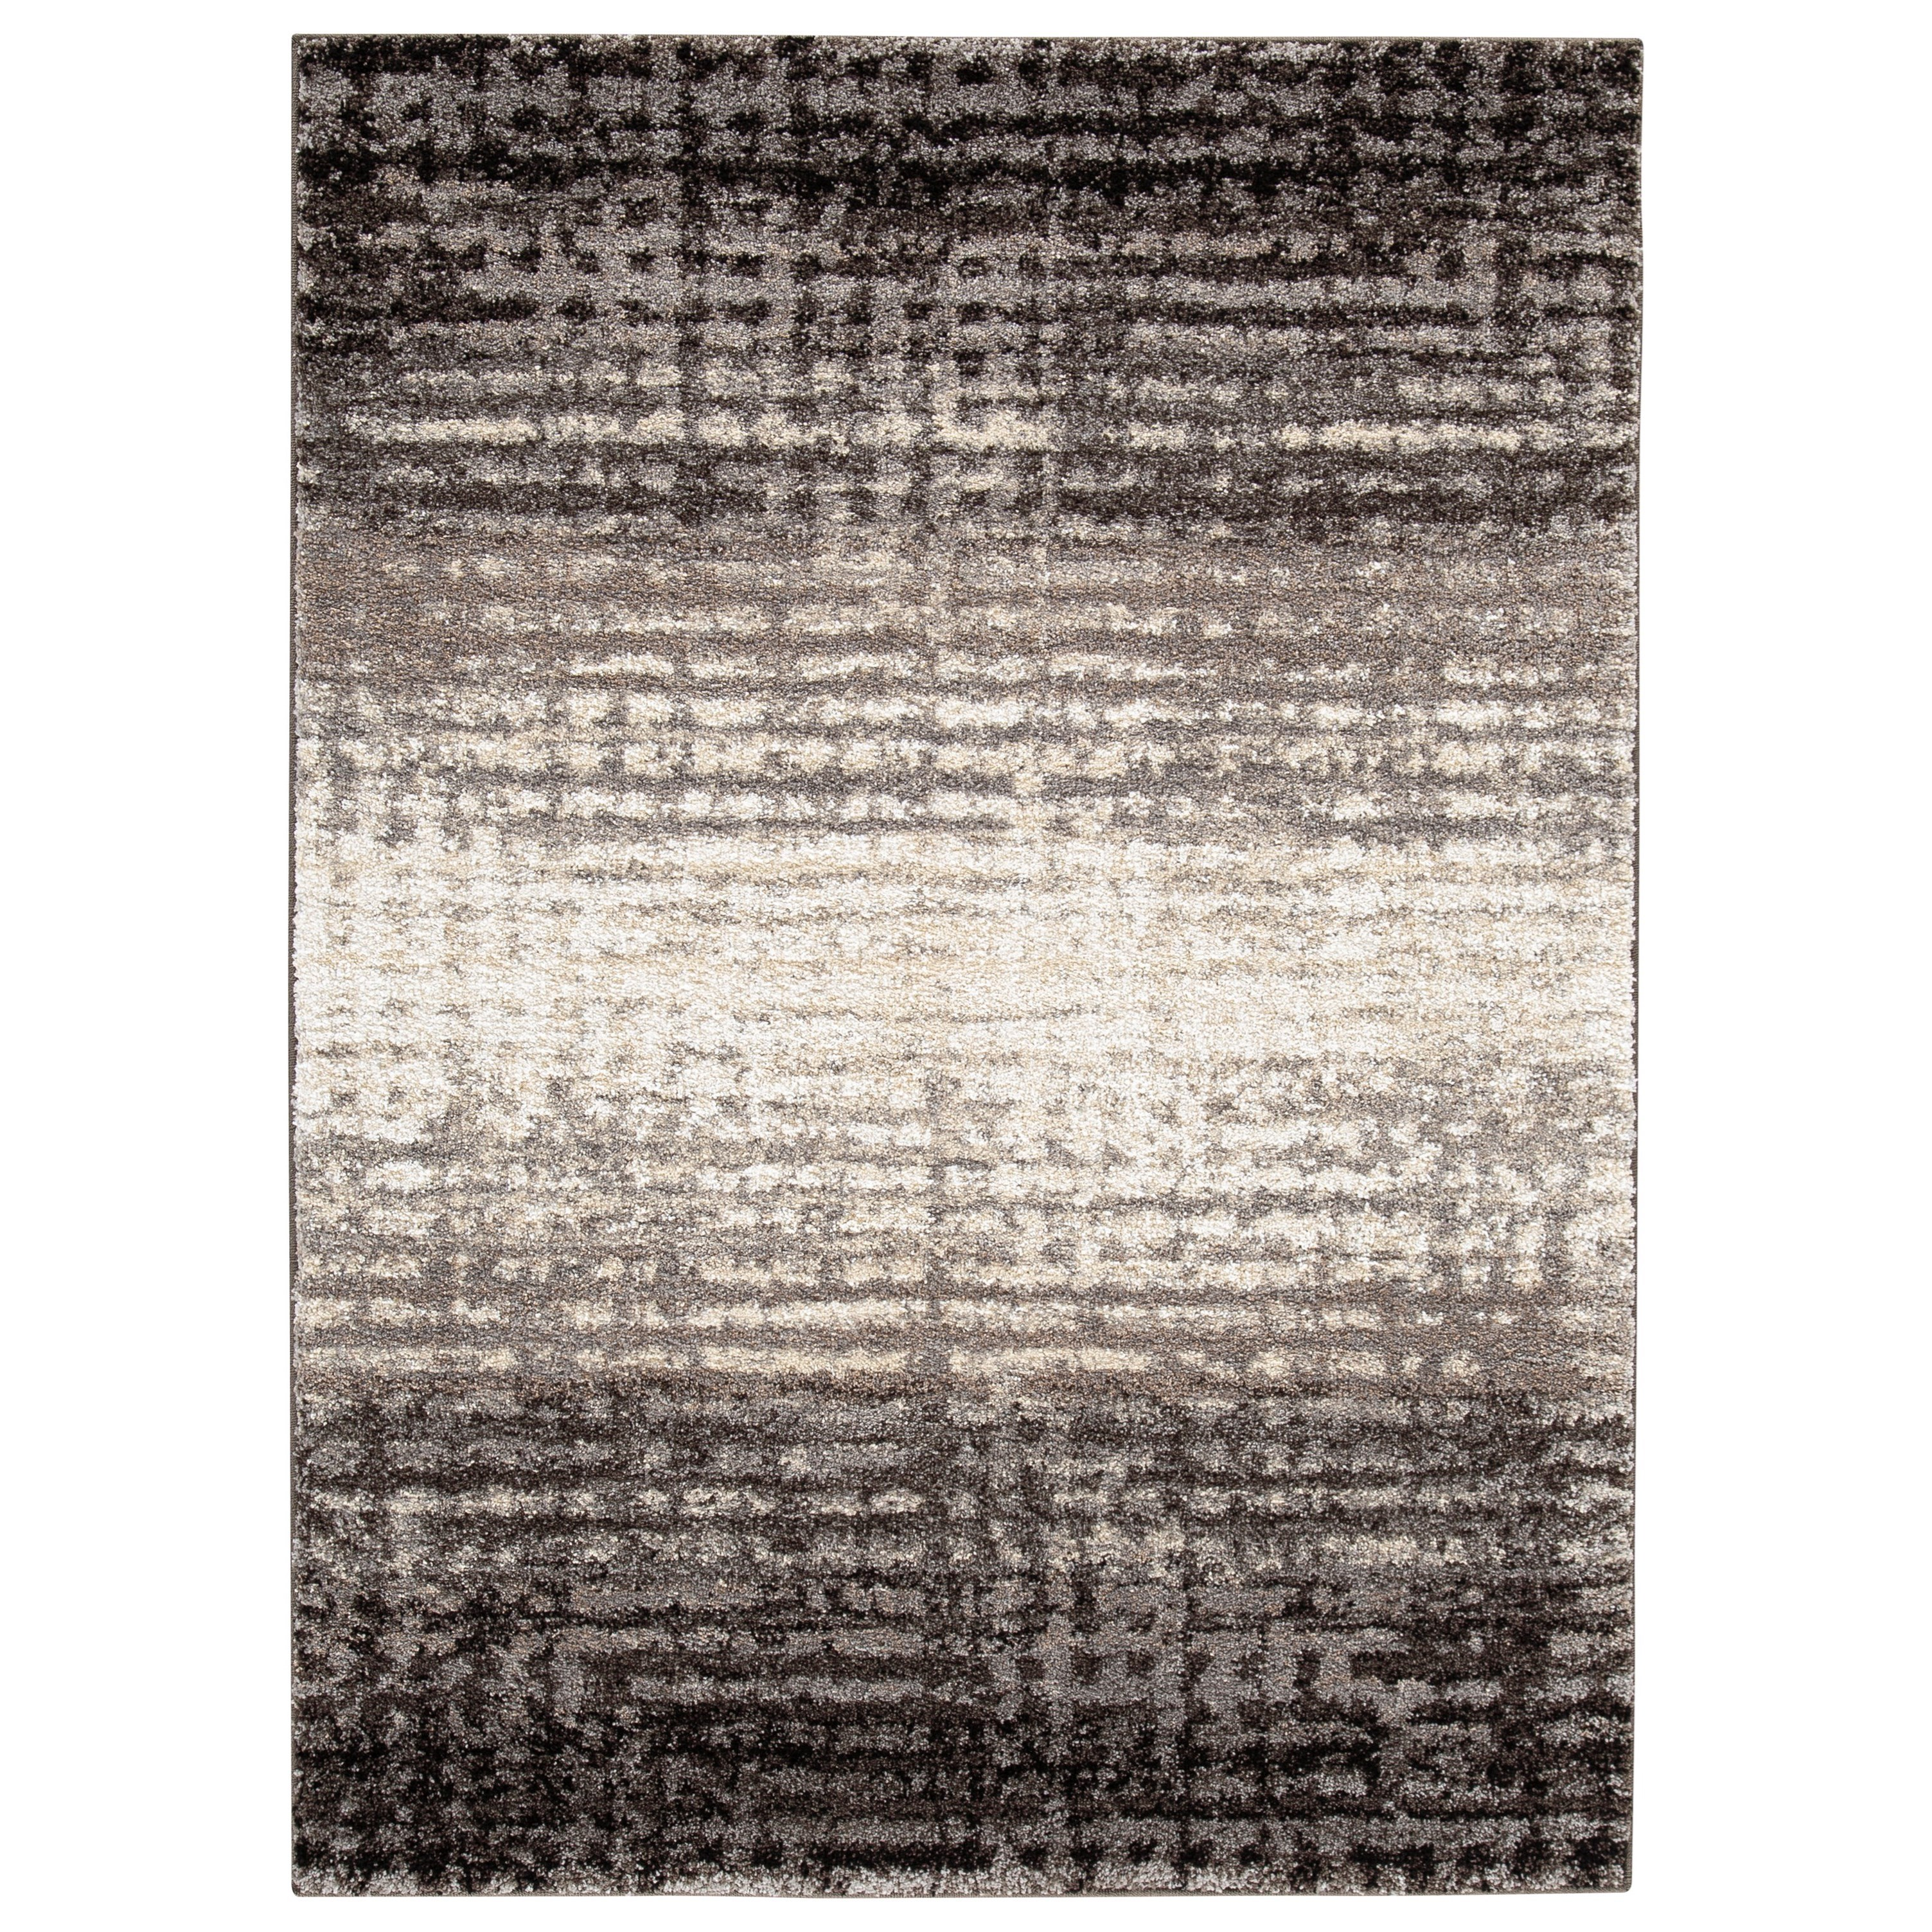 Contemporary Area Rugs Marleisha Black/Natural Large Rug by Signature Design by Ashley at Northeast Factory Direct